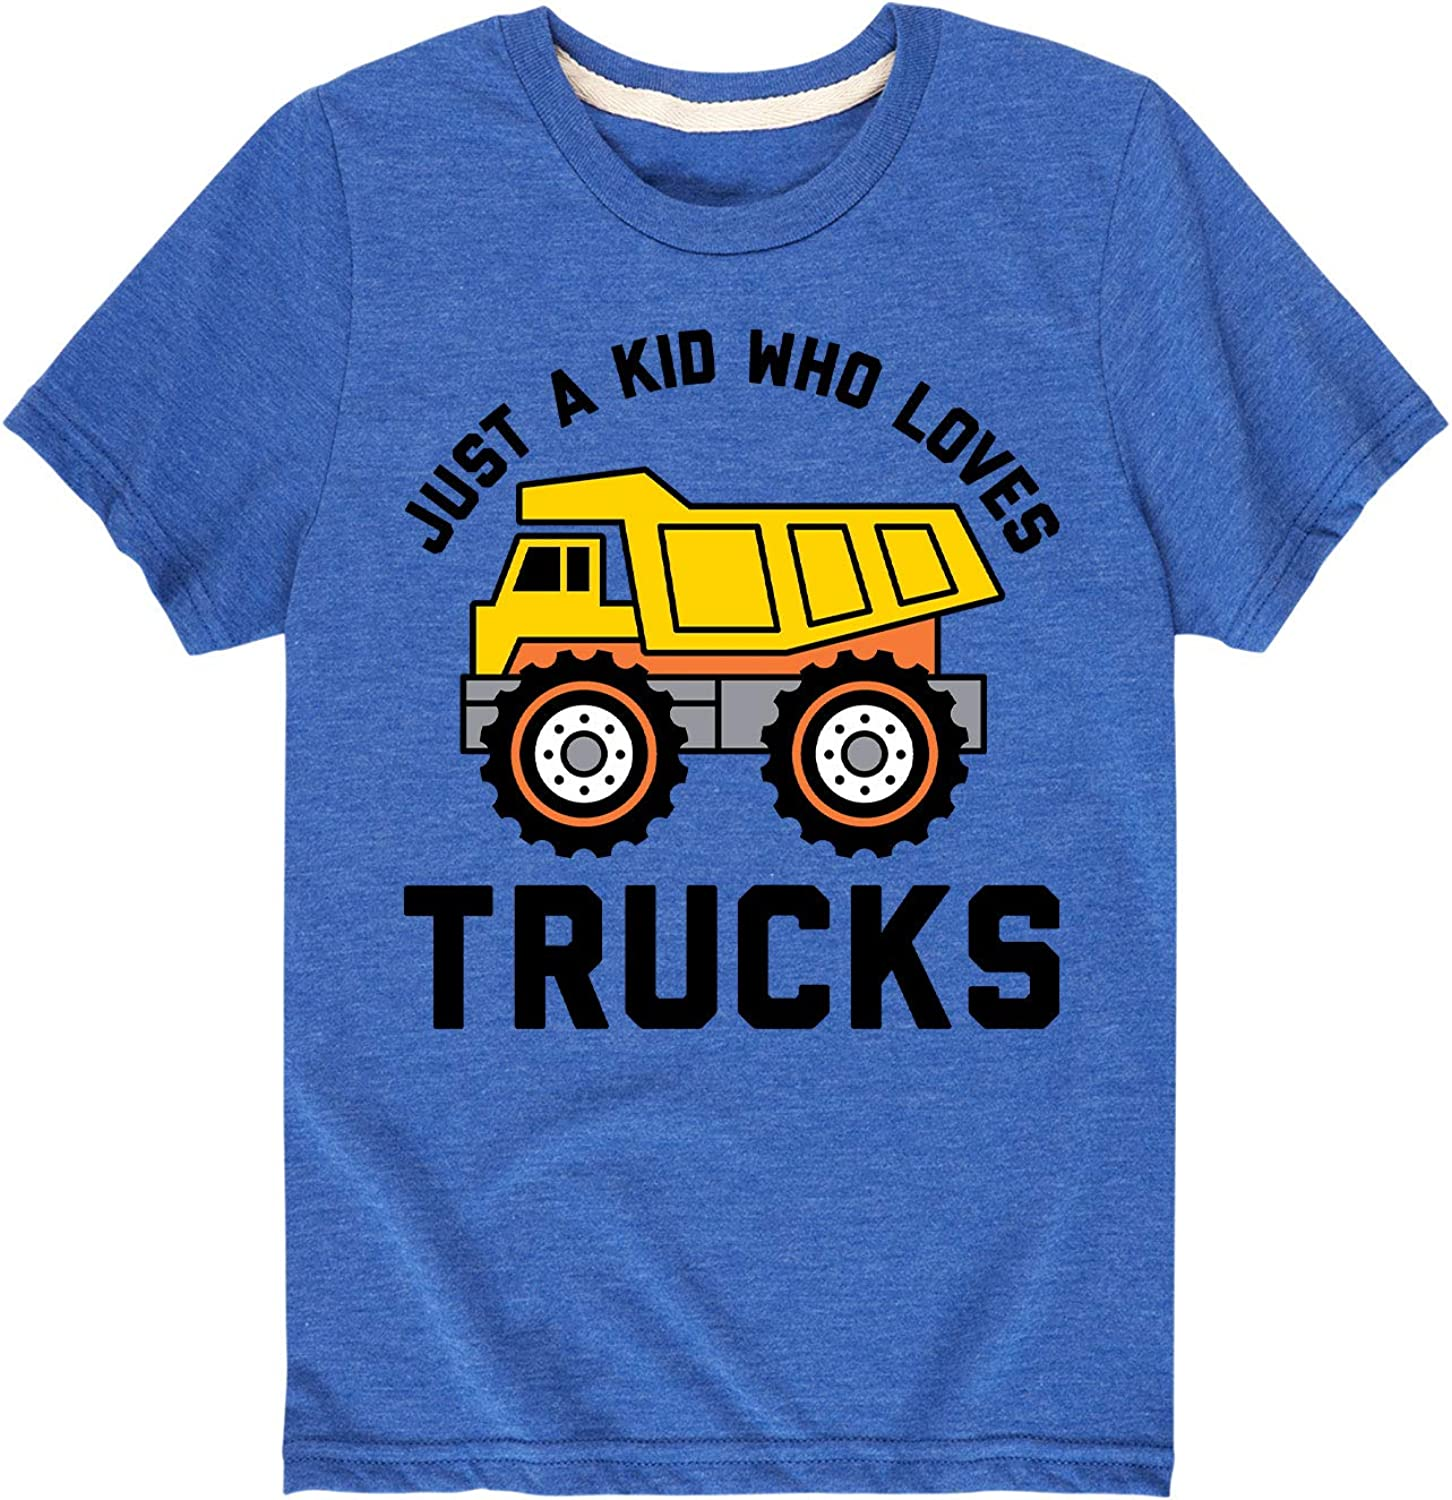 Just A Kid Who Loves Trucks - Toddler and Youth Short Sleeve T-Shirt